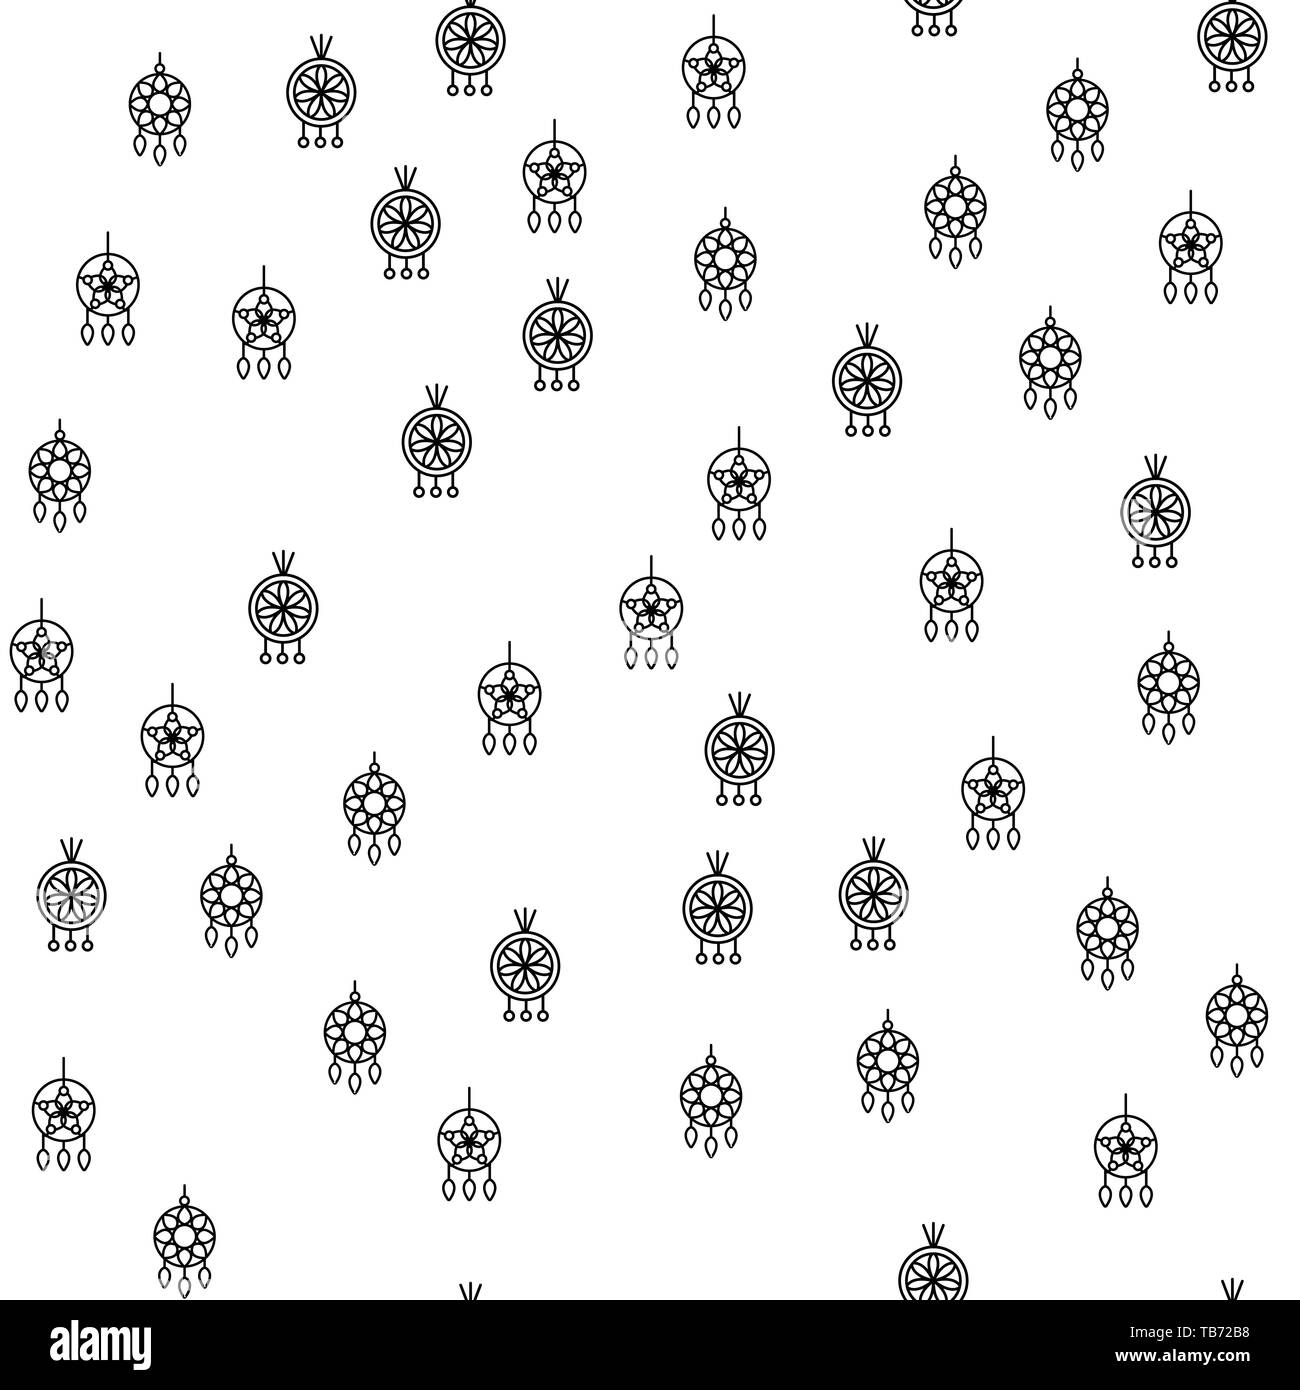 Various Jewelry Earrings Seamless Pattern Vector. Different Fashionable Stylish Circle Earrings Monochrome Texture Icons. Assortment Of Elegance Bijou - Stock Image